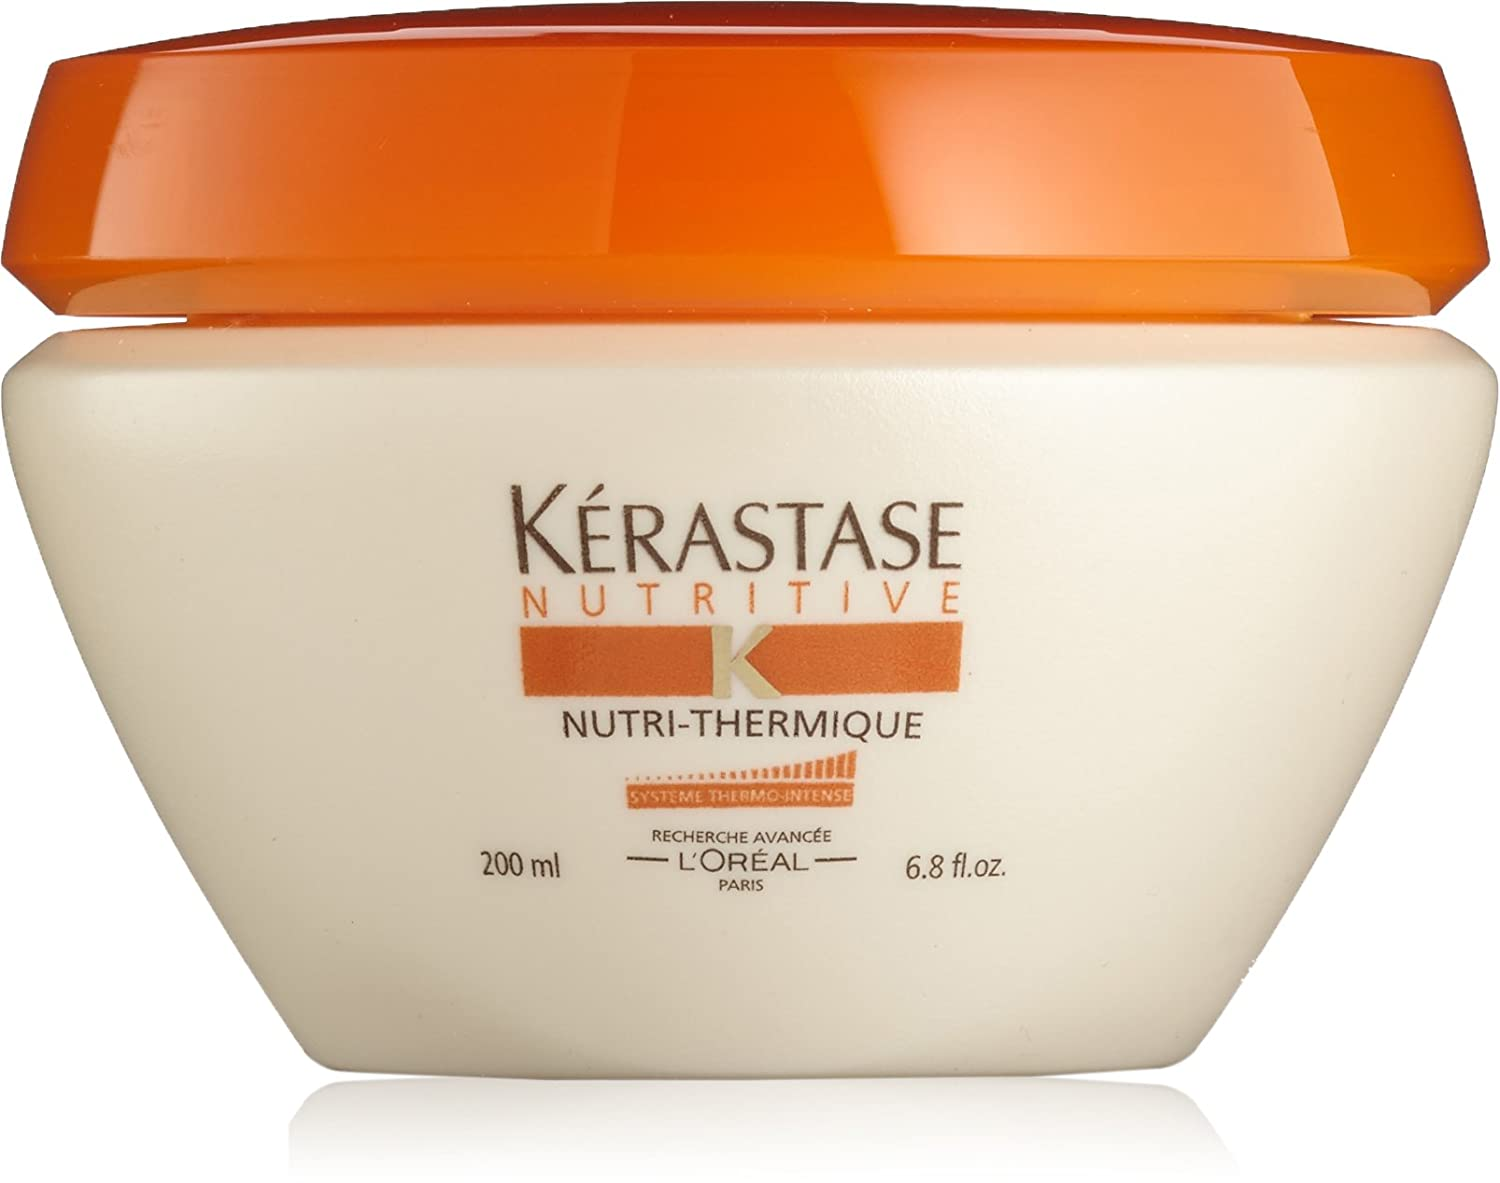 Kerastase Nutritive Nutri-Thermique Thermo-Reactive Intensive Nutrition Masque U-HC-4623 38741